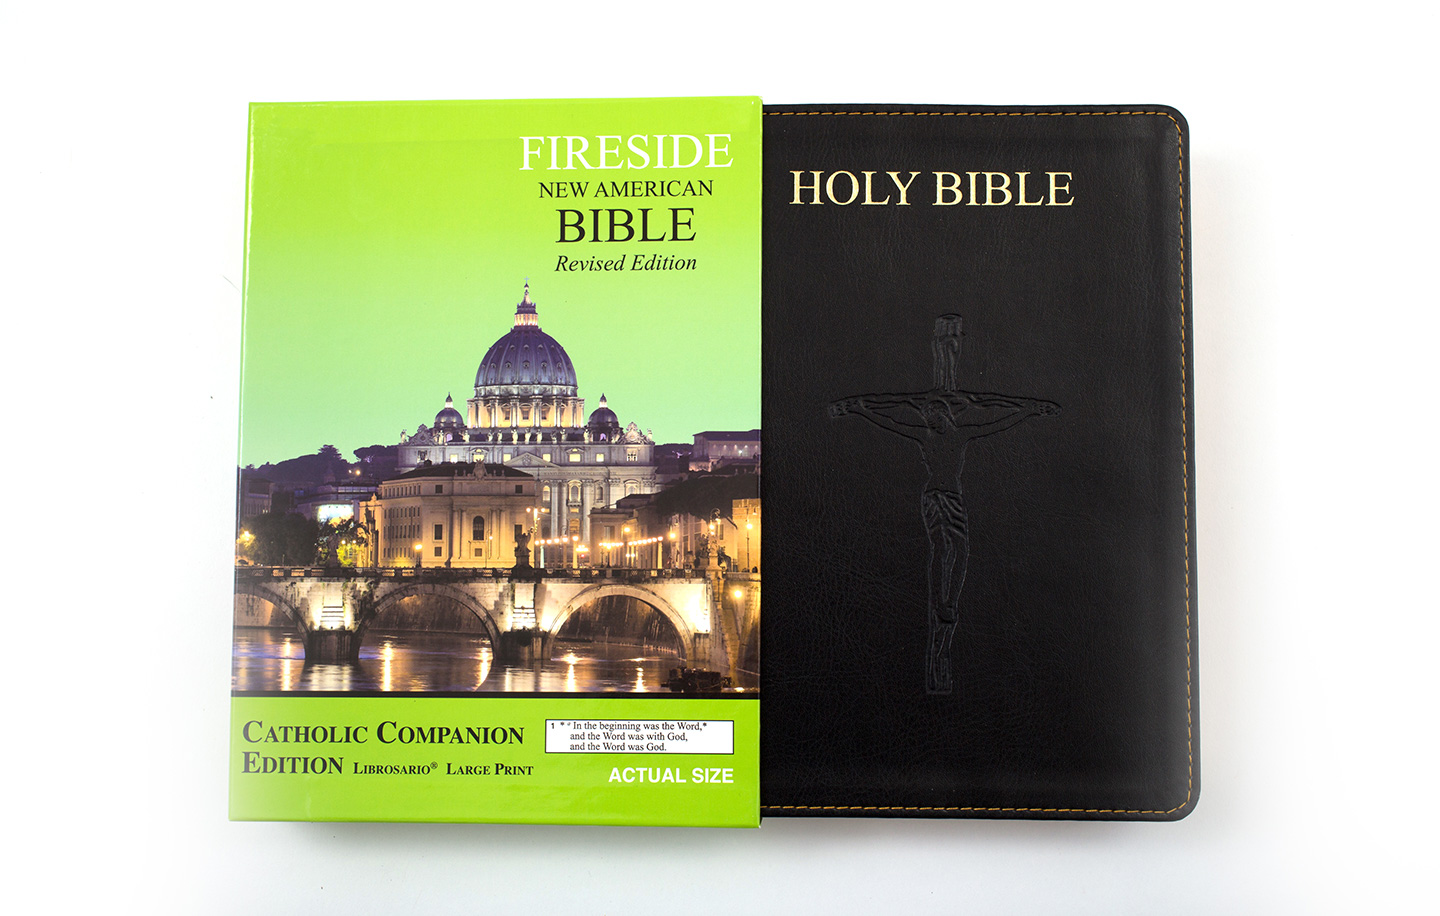 ISBN # 9781556654008 Fireside Catholic Companion Edition Large Print - Librosario   (Front and Spine Image close up)